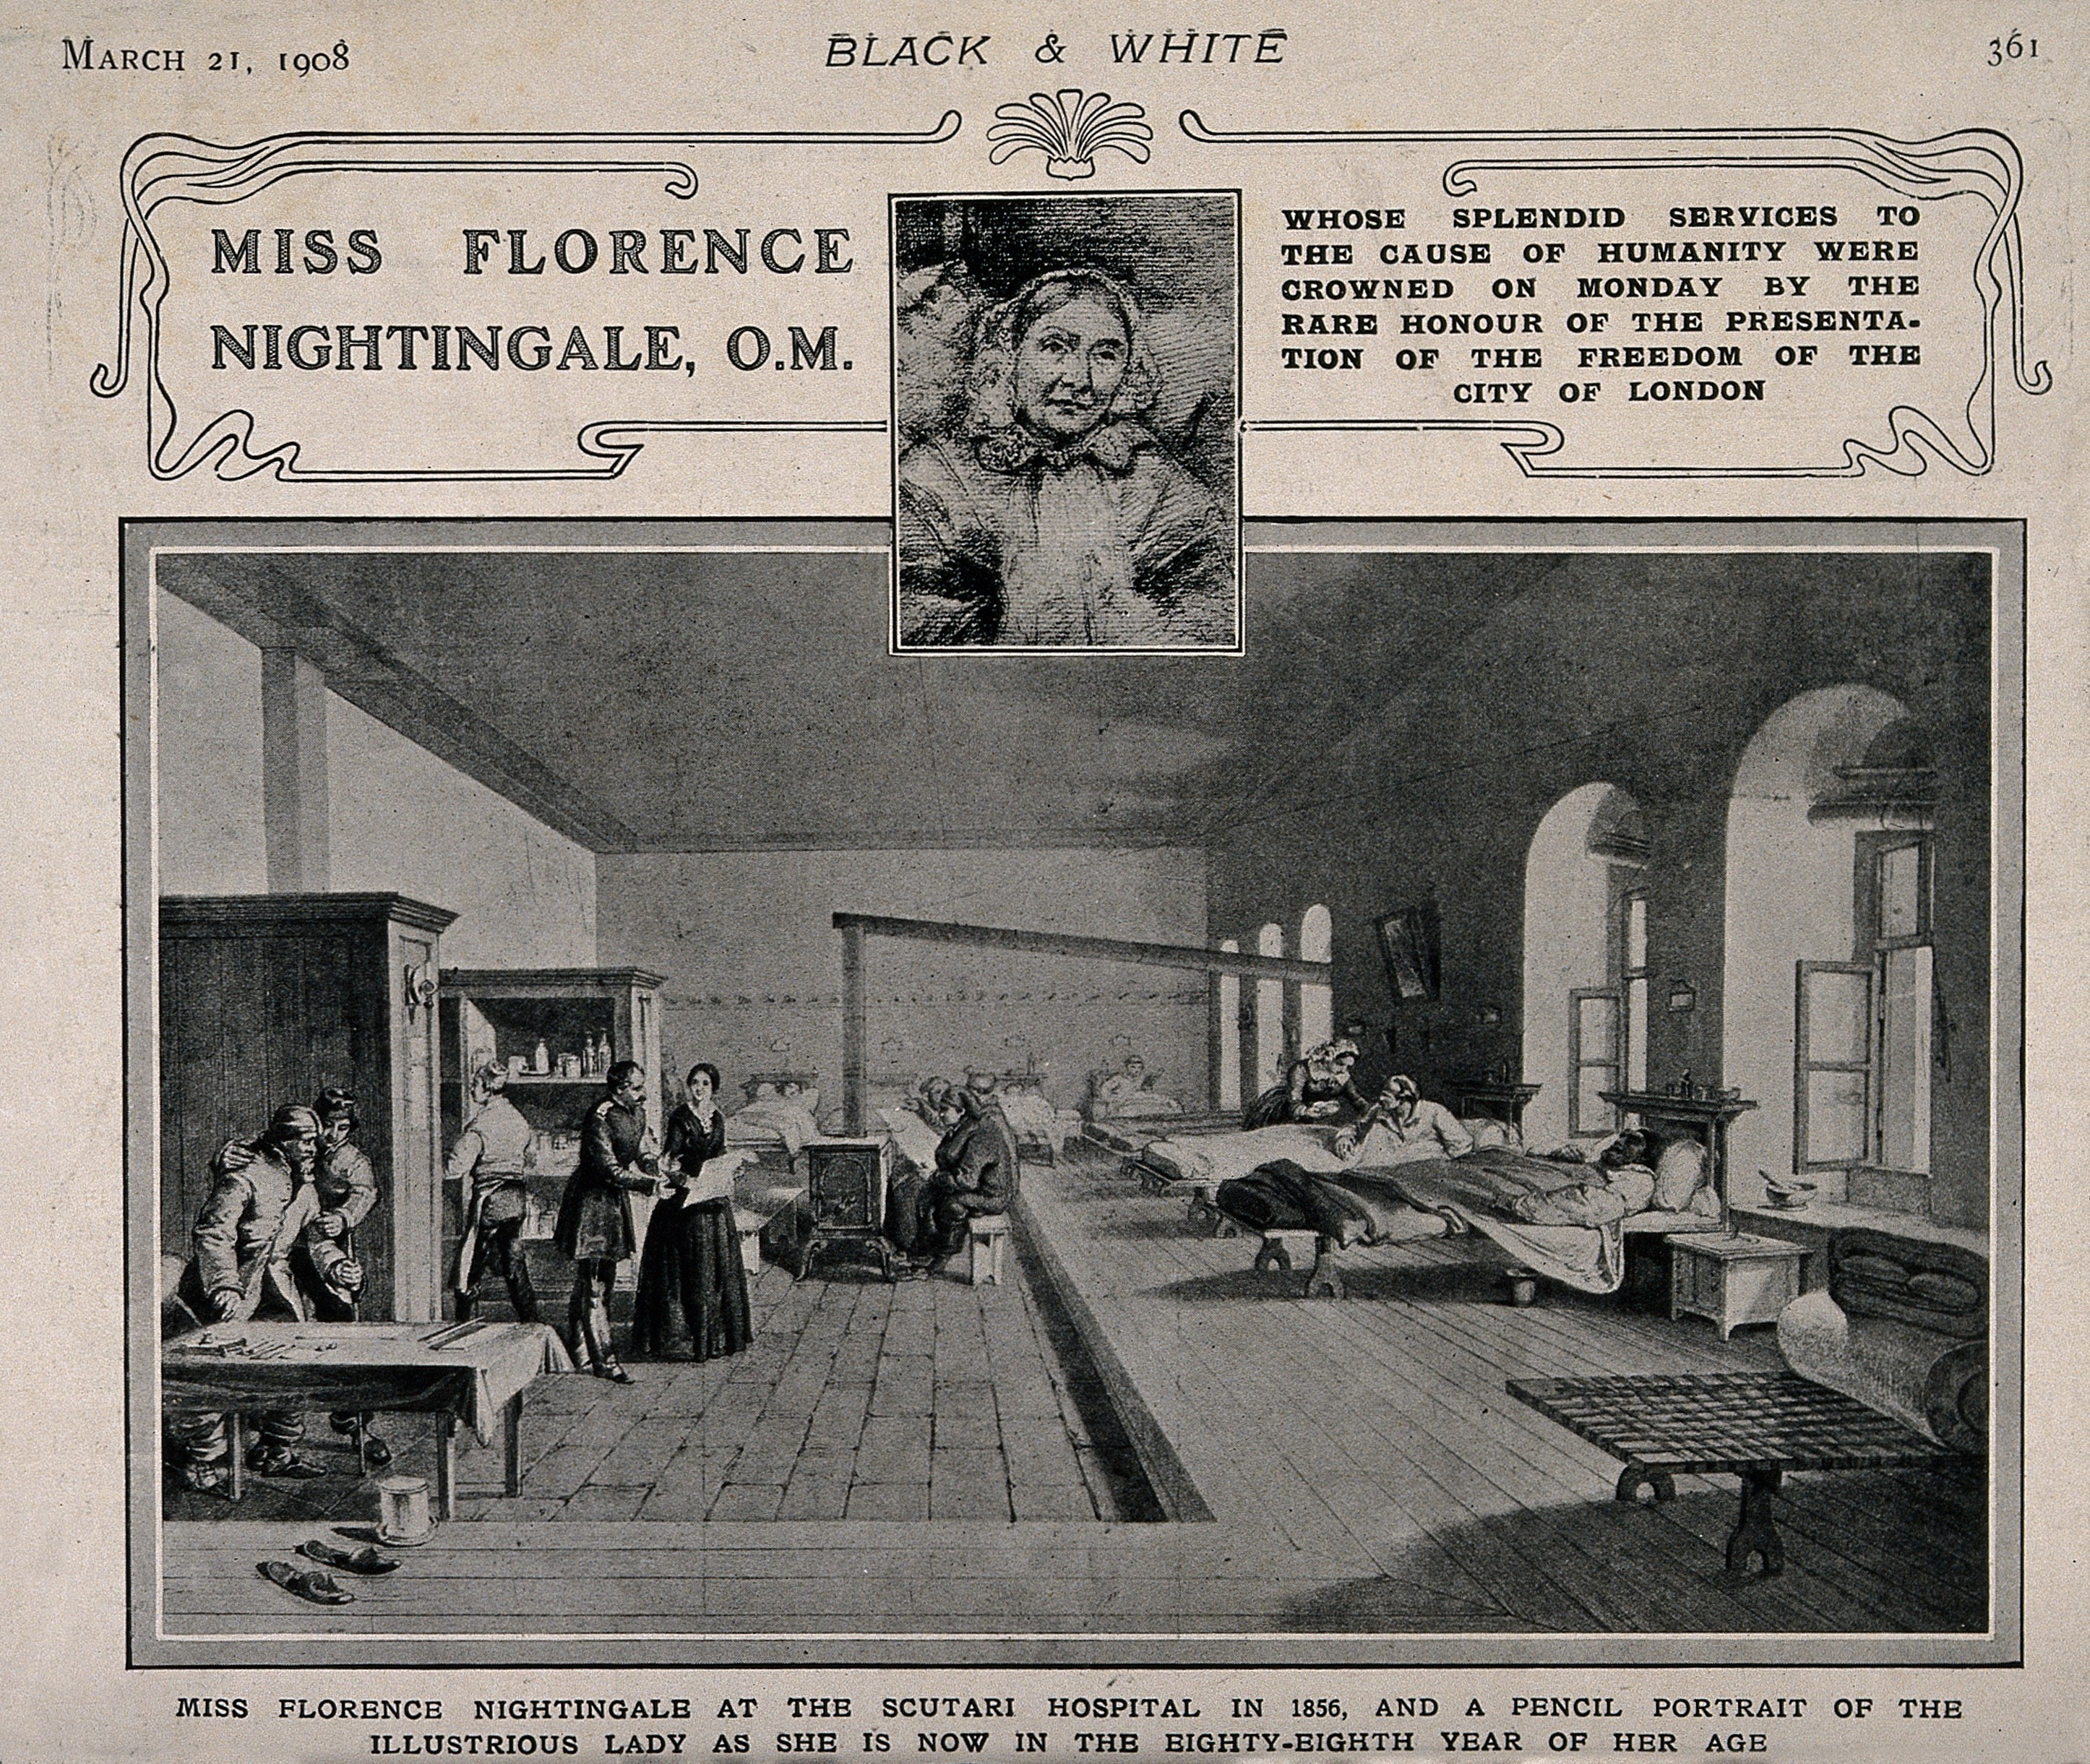 Crimean_War;_Florence_Nightingale_at_Scutari_Hospital,_1856,_Wellcome_V0015400.jpg